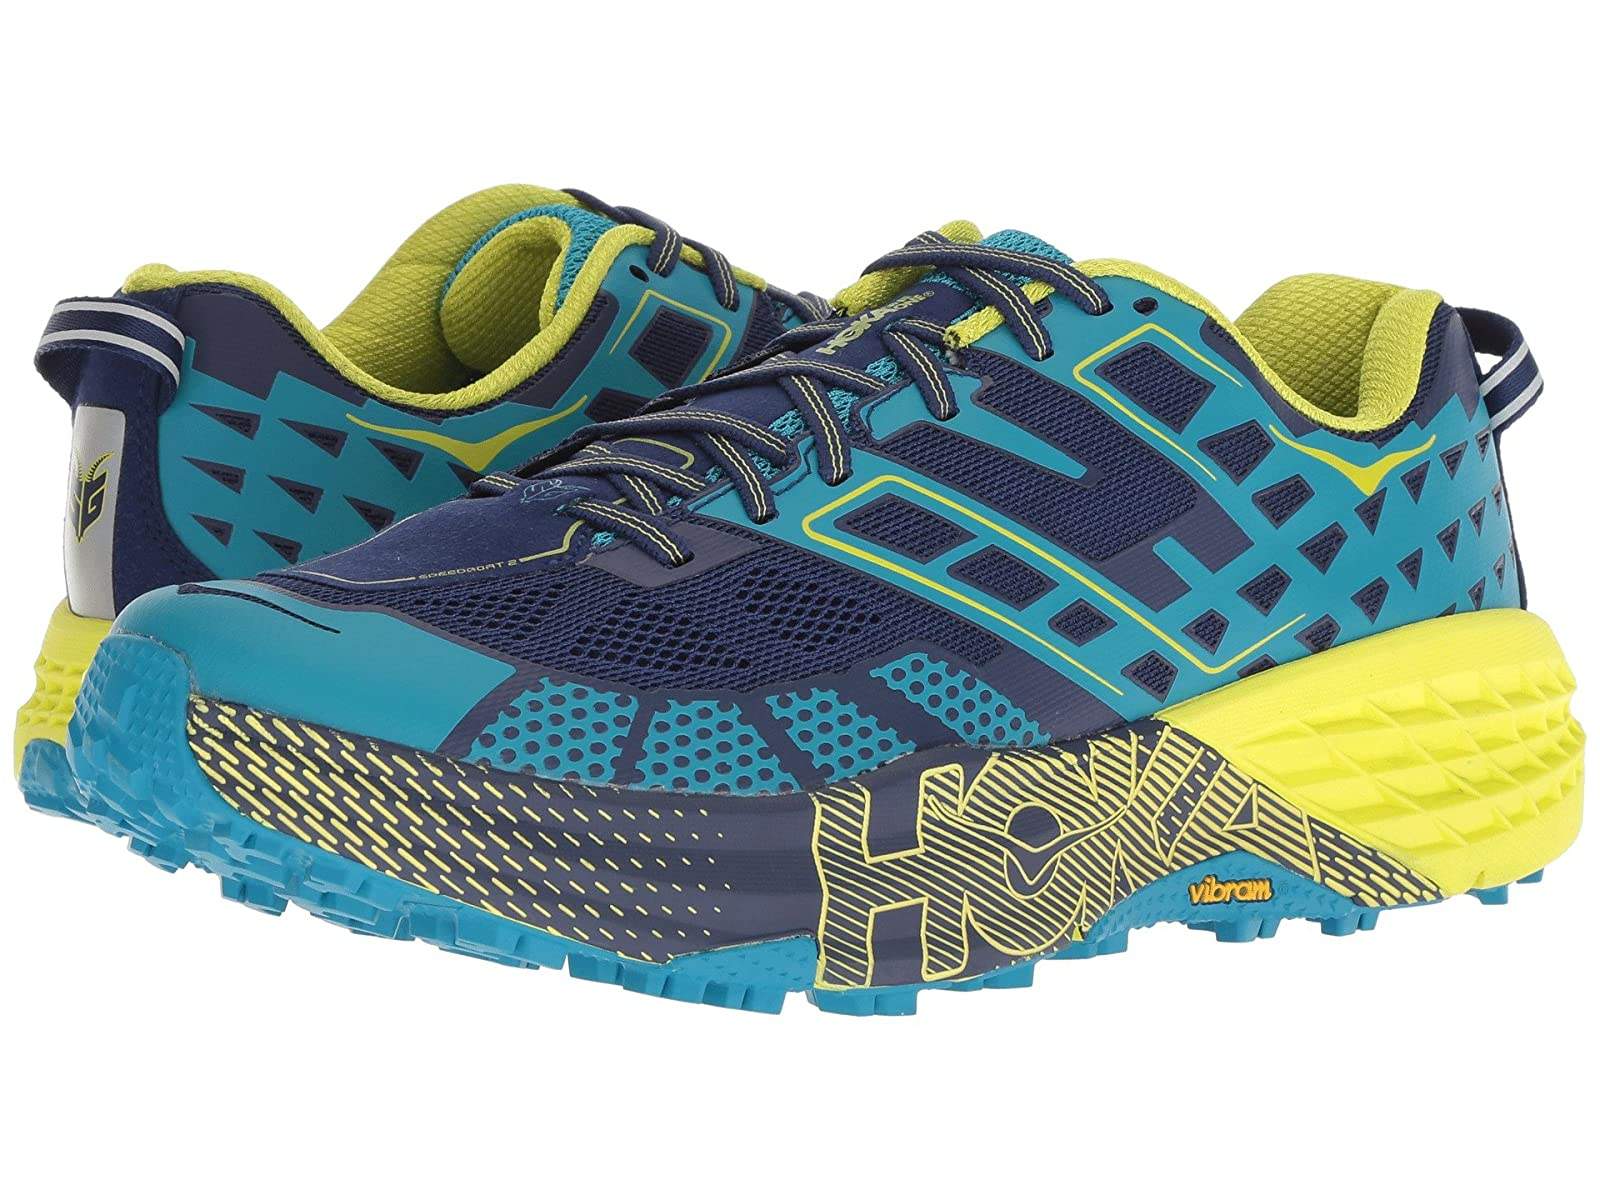 Hoka One One Speedgoat 2Atmospheric grades have affordable shoes